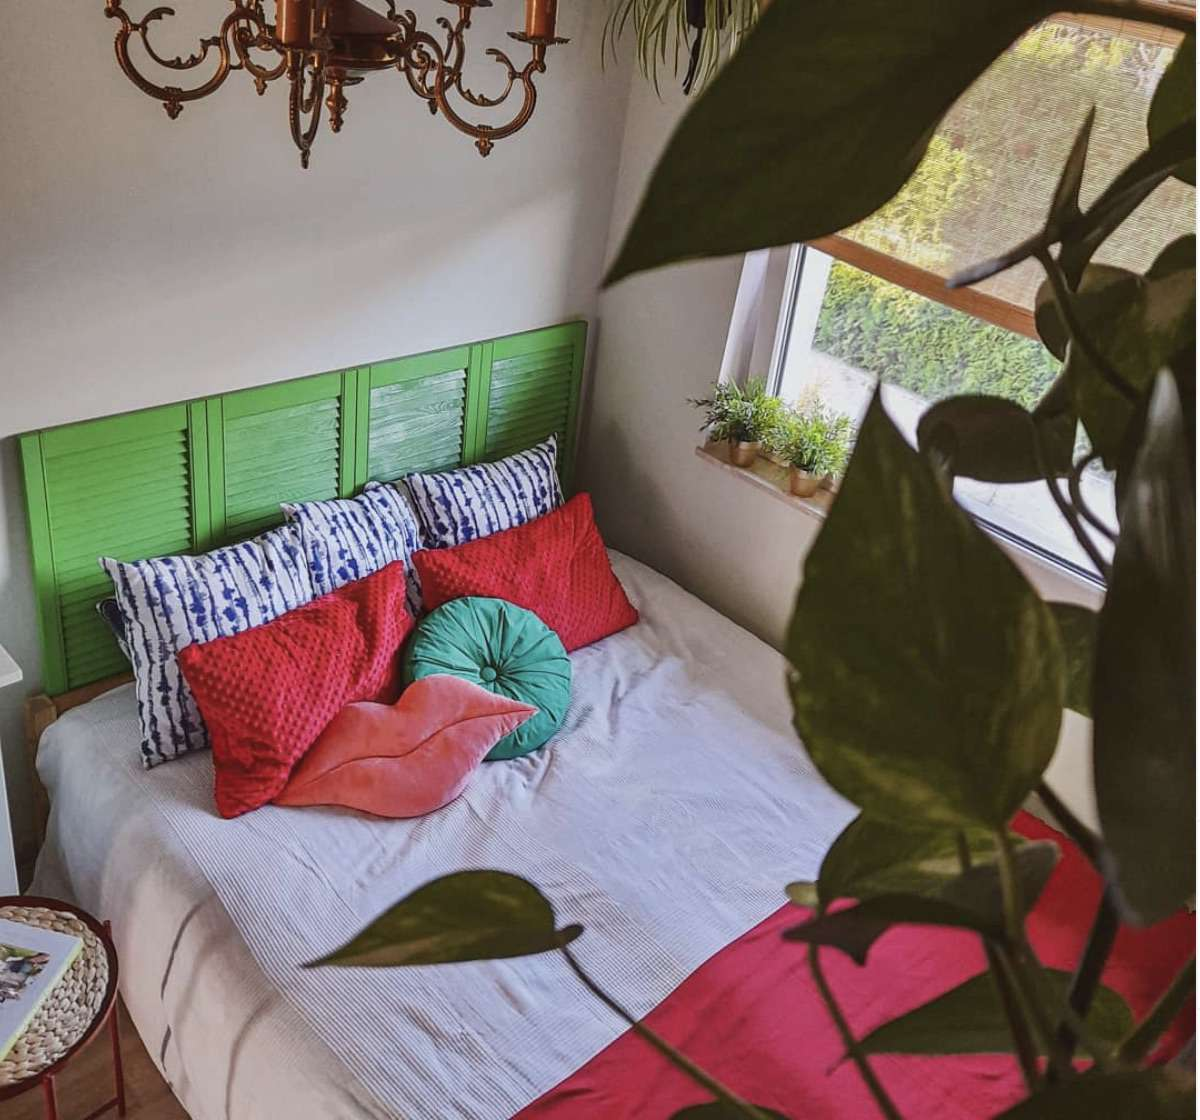 bedroom with bright green headboard and plants, red pillows and blanket, elegant bronze chandlier